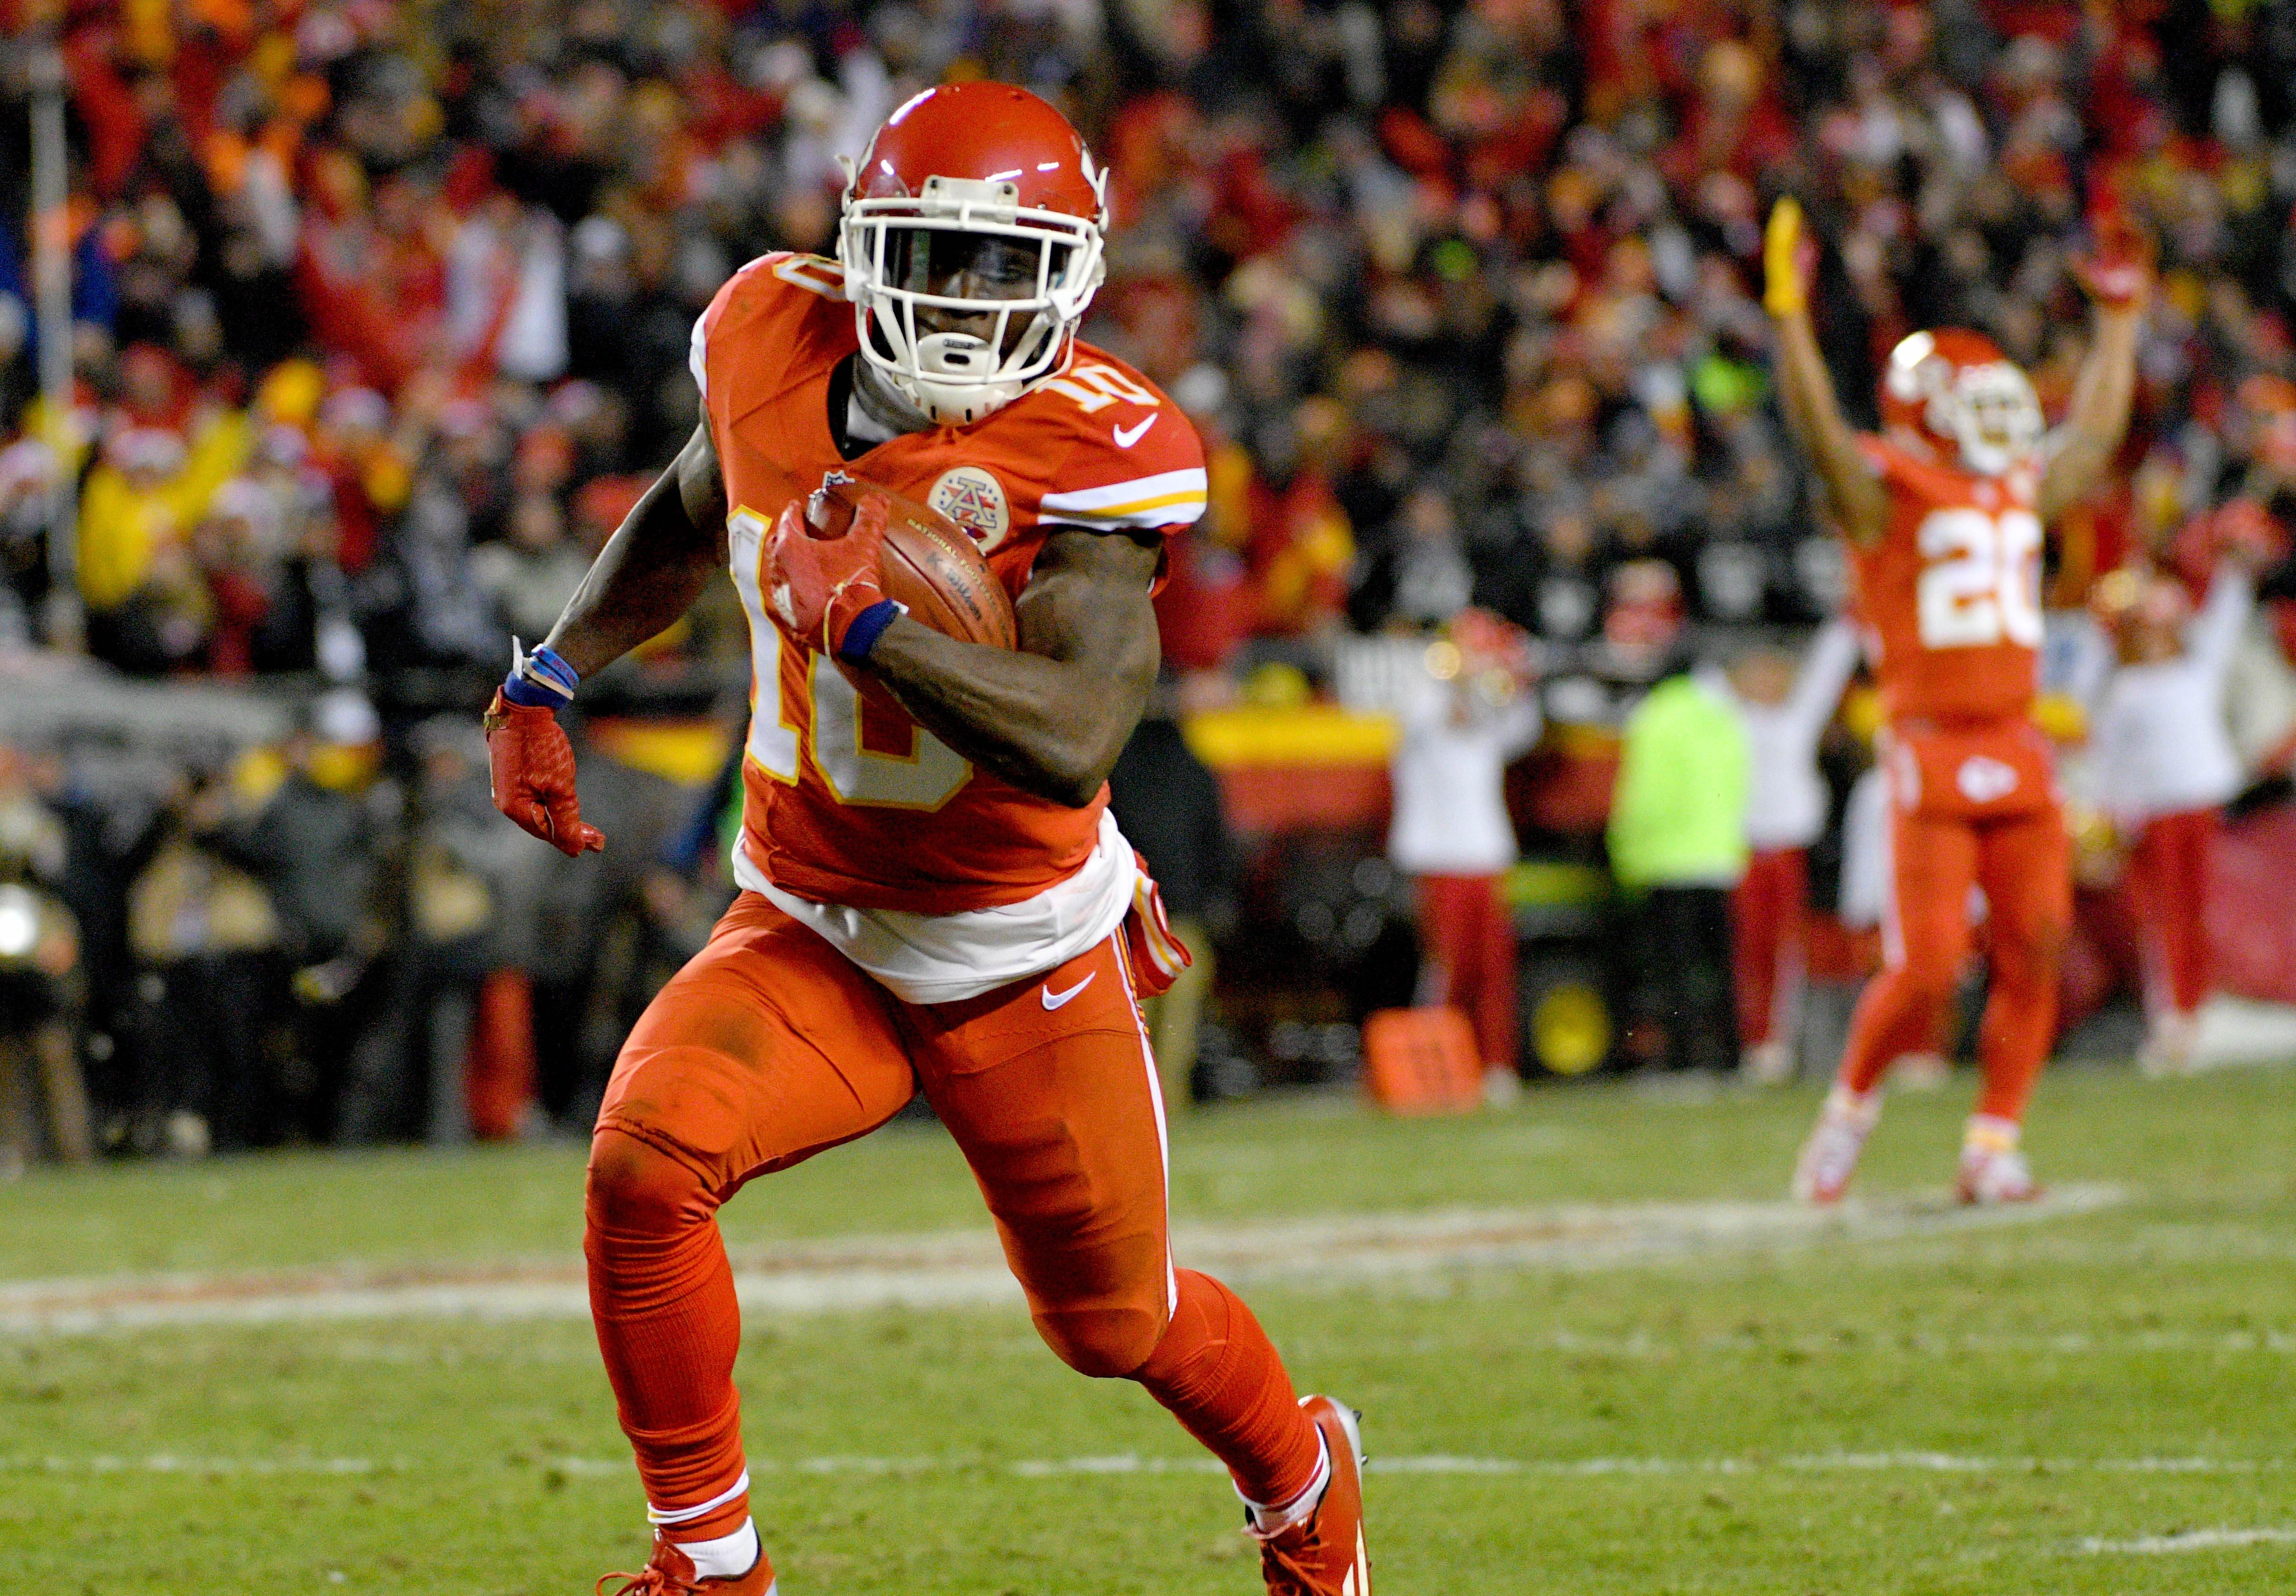 fa184e807f3 Chiefs receiver Tyreek Hill made his first Pro Bowl as a rookie, and will  serve as the AFC's kick return specialist. Photo: Reuters